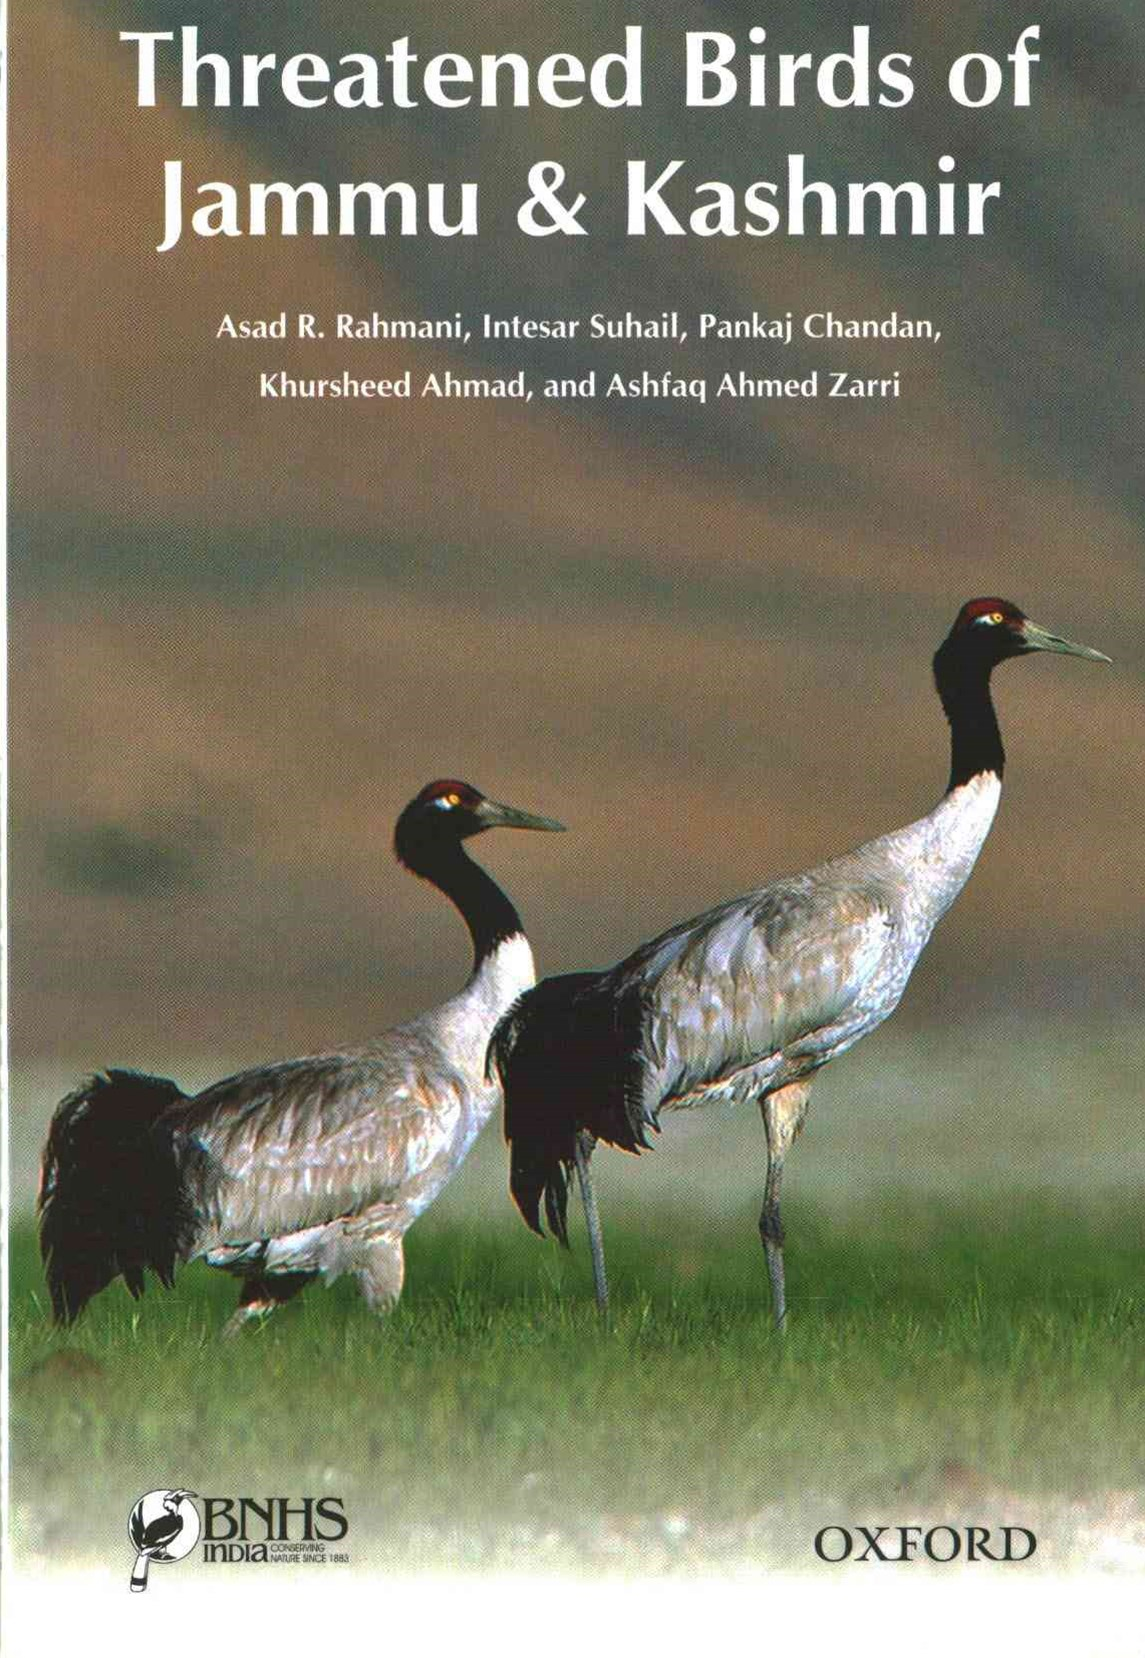 Threatened Birds of Jammu & Kashmir